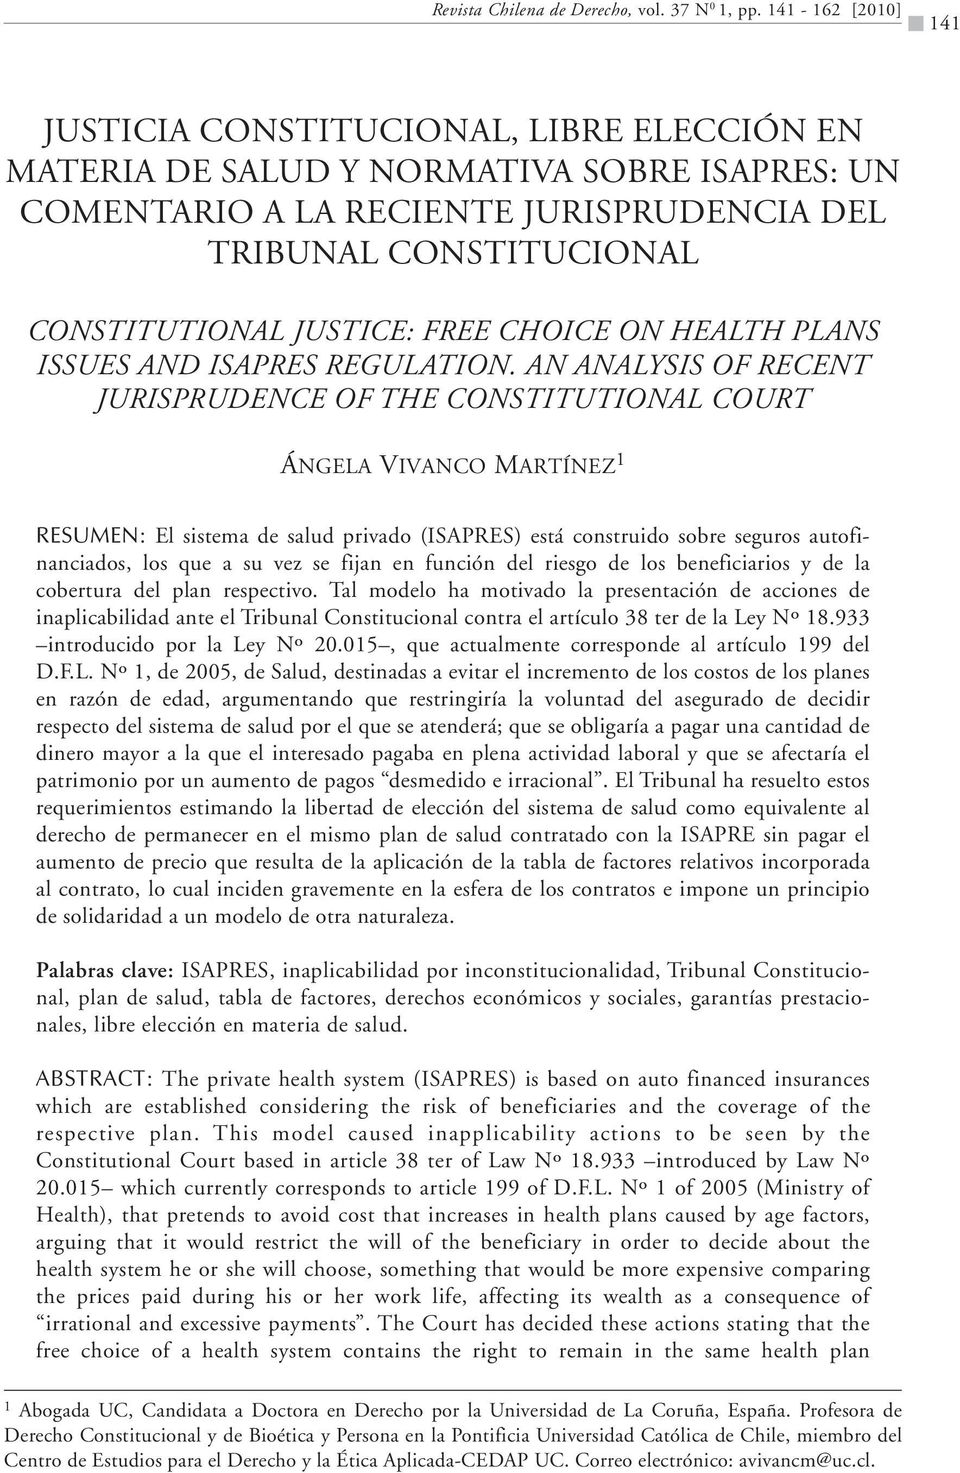 AN ANALYSIS OF RECENT JURISPRUDENCE OF THE CONSTITUTIONAL COURT ÁNGELA VIVANCO MARTÍNEZ 1 RESUMEN: El sistema de salud privado (ISAPRES) está construido sobre seguros autofinanciados, los que a su